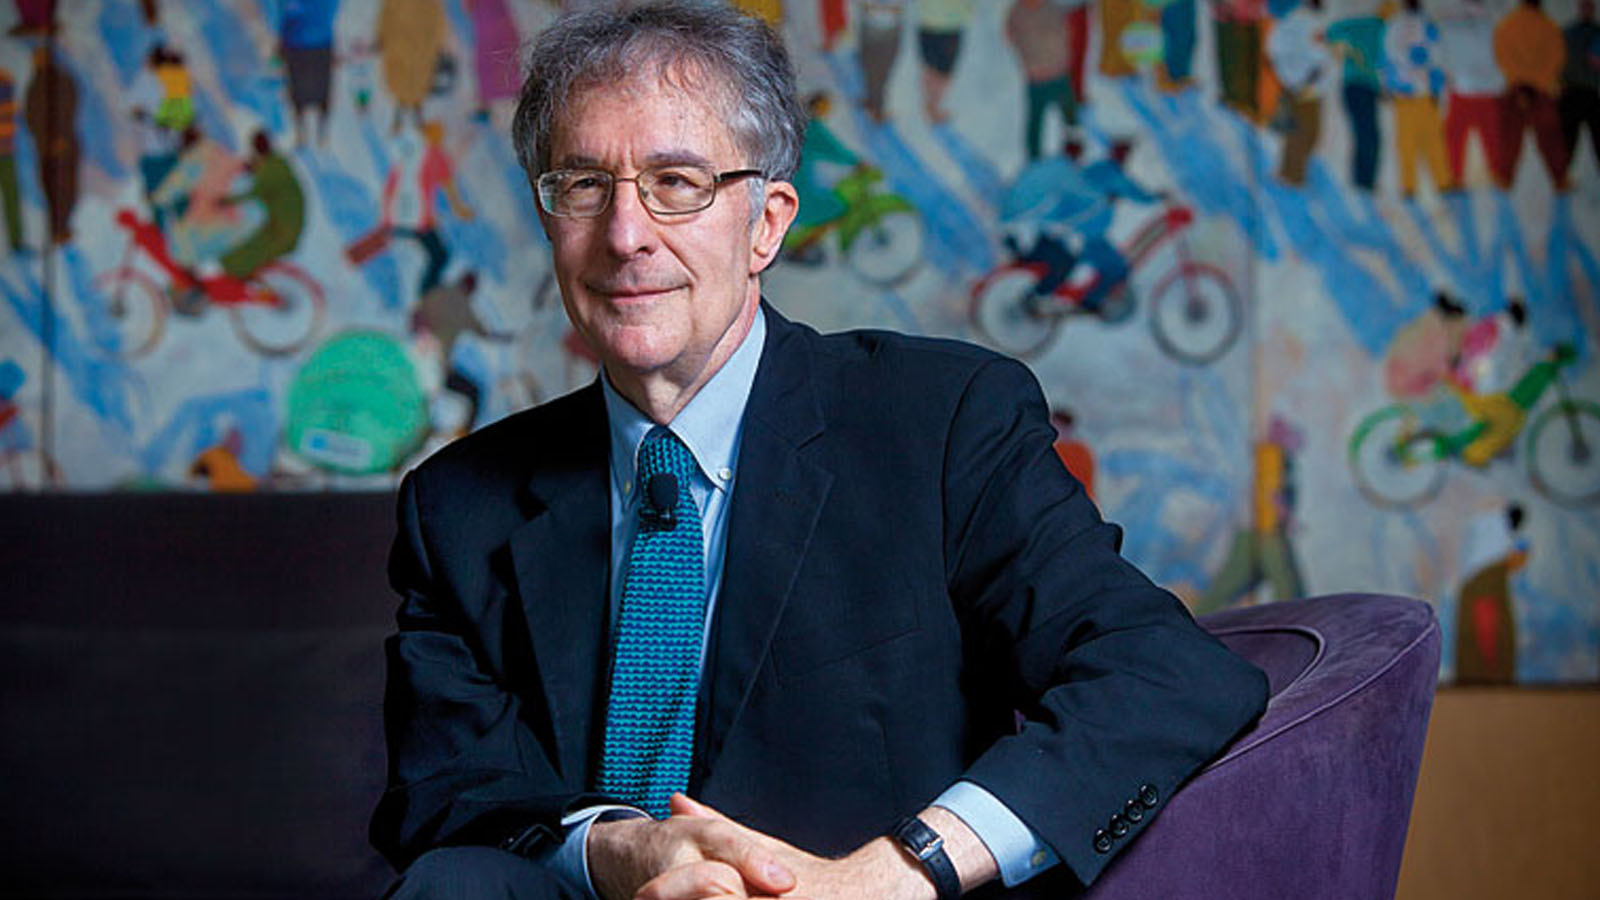 Howard Gardner (Photo by Jordi Play)